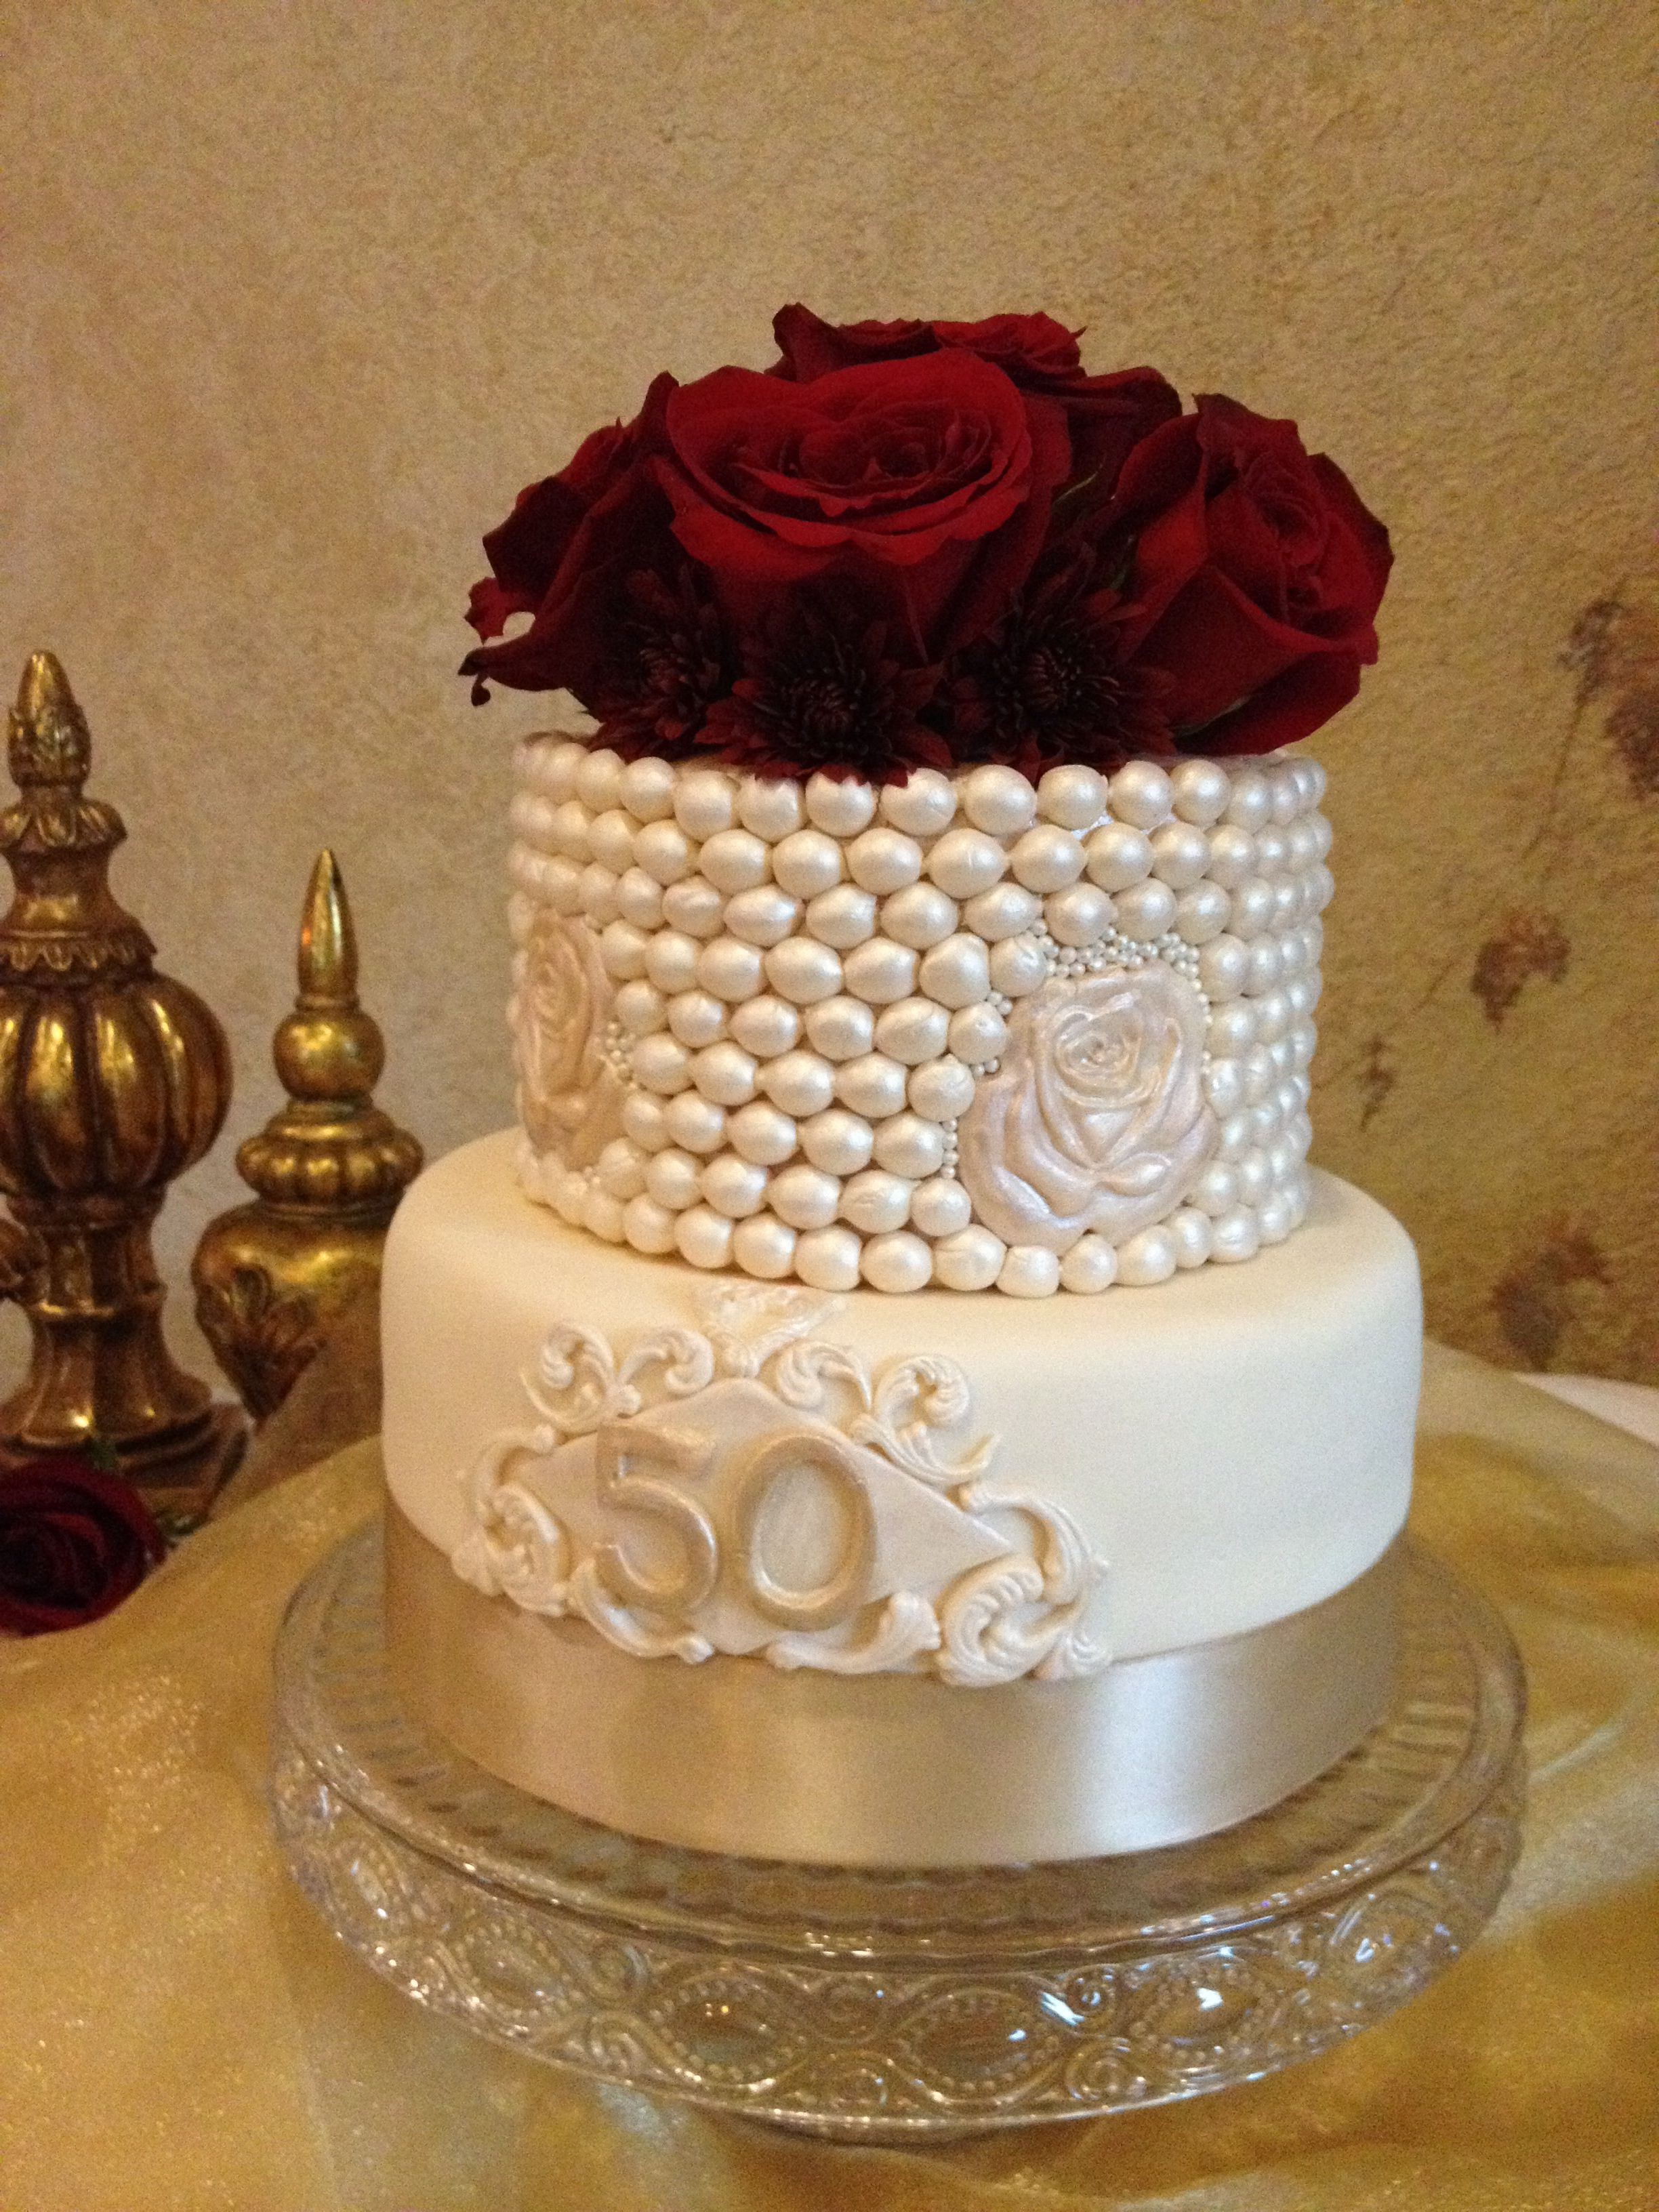 50th Wedding Anniversary Cake By Cakes Clarke Cream Colored With Rose Inlay And Pearl Design